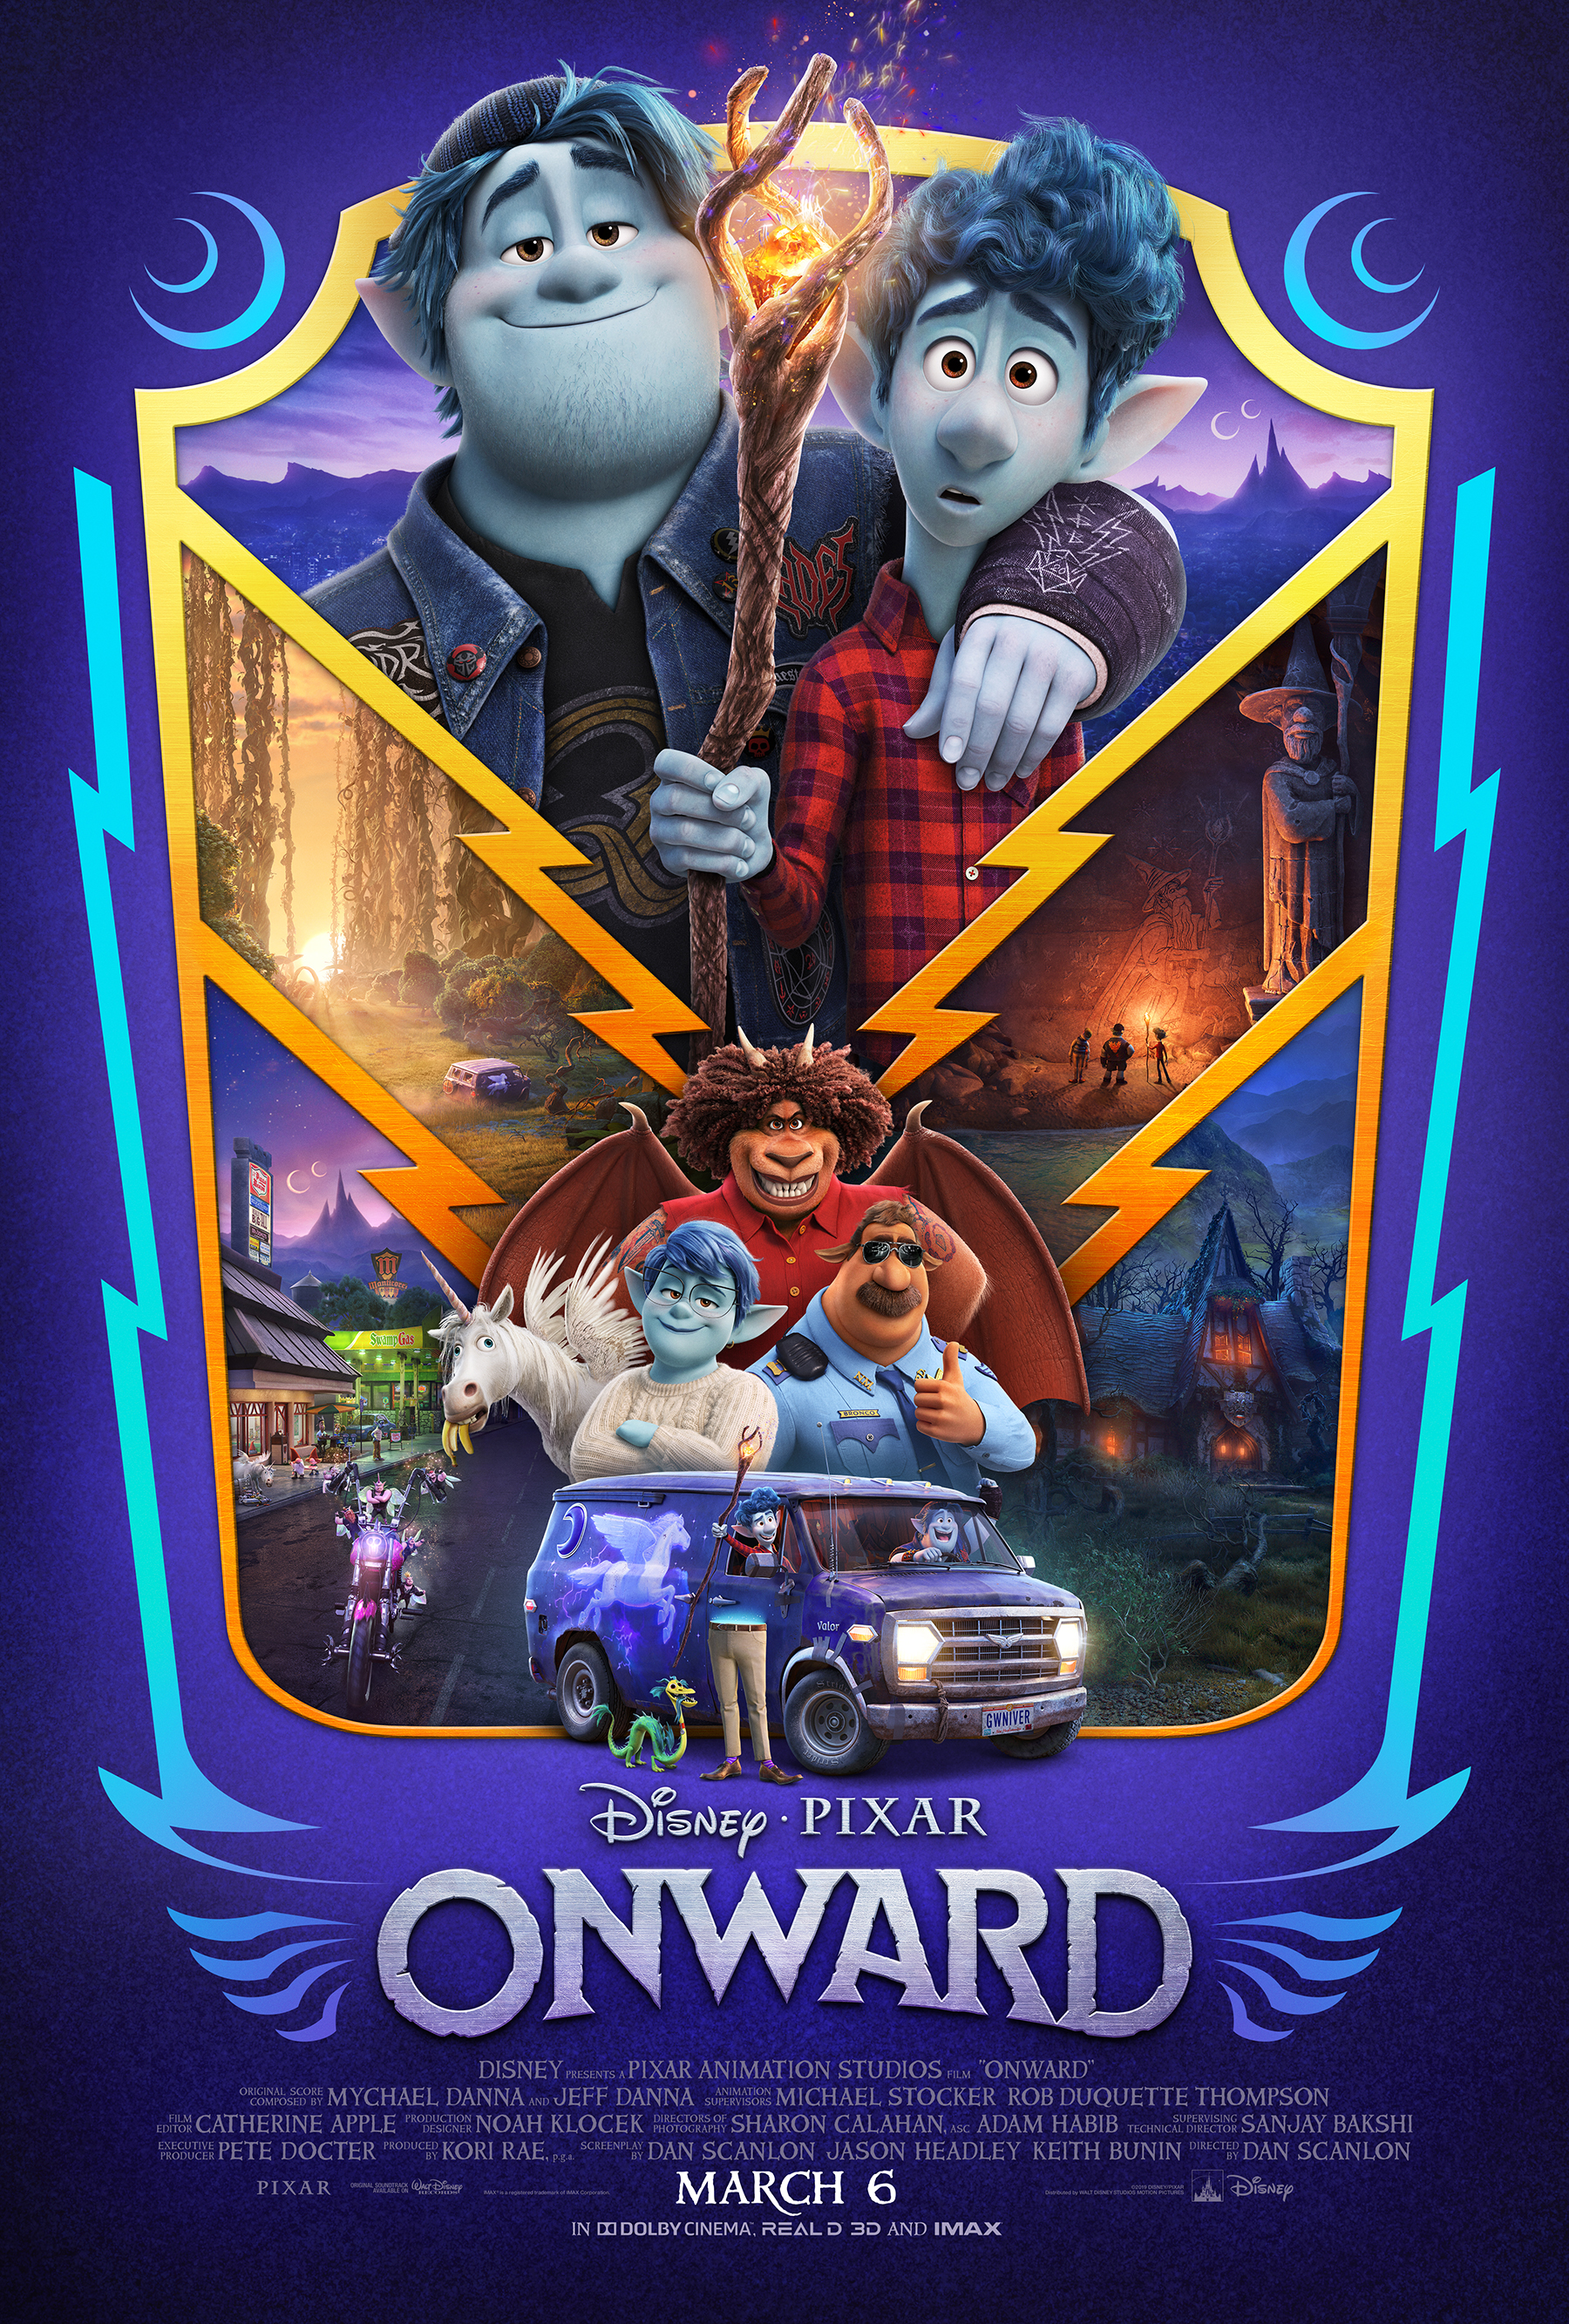 Onward.2020.MULTi.COMPLETE.BLURAY-MONUMENT